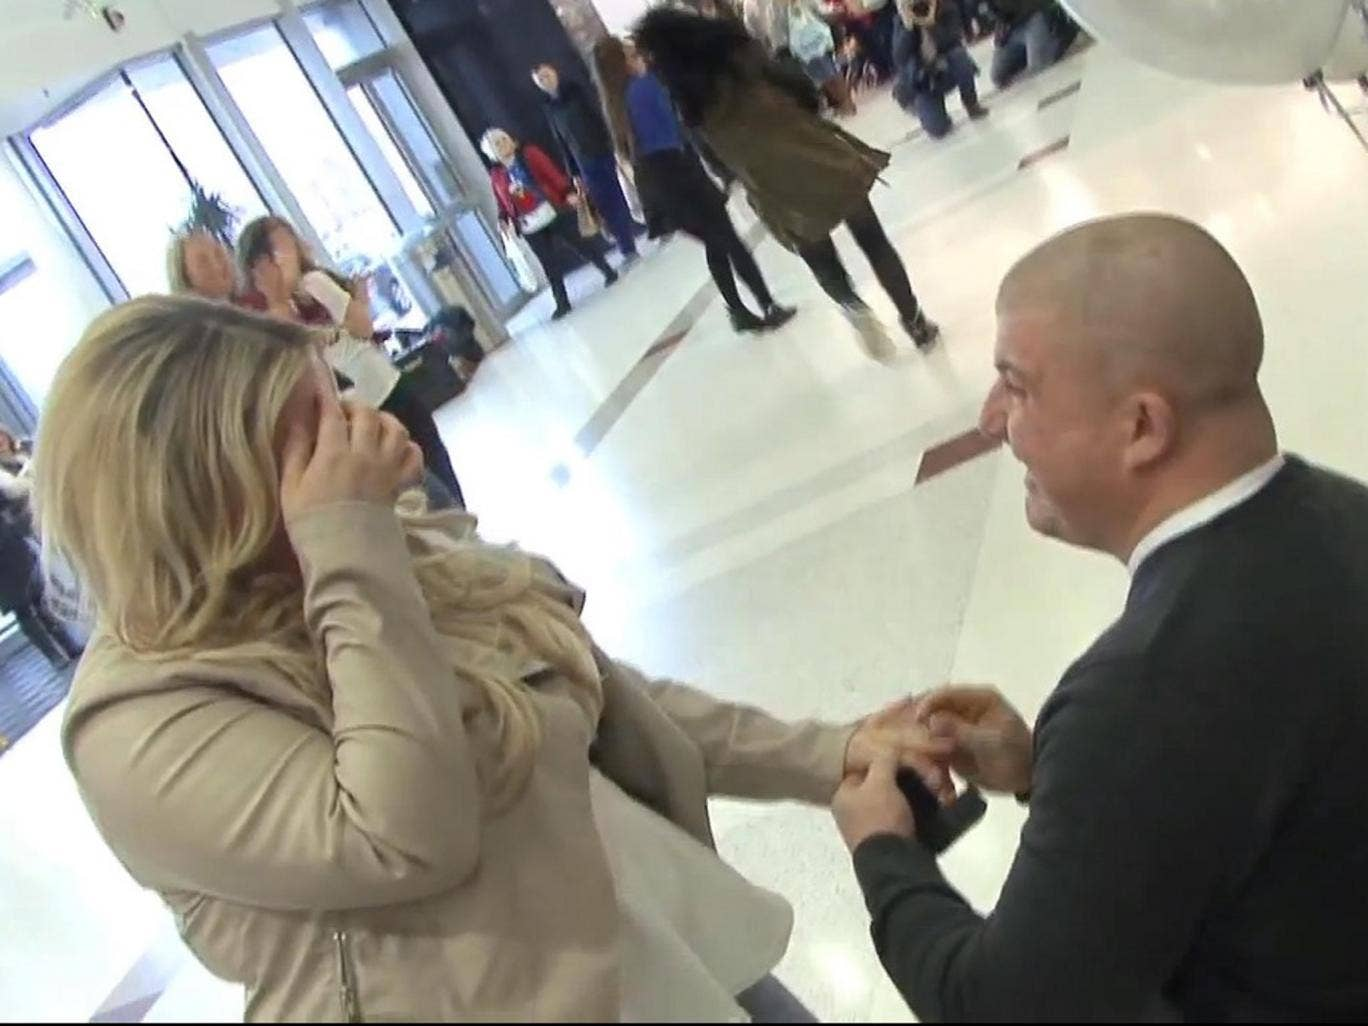 Moment of troth: Bobby Beattie proposes to girlfriend Laura in the Braehead Shopping Centre